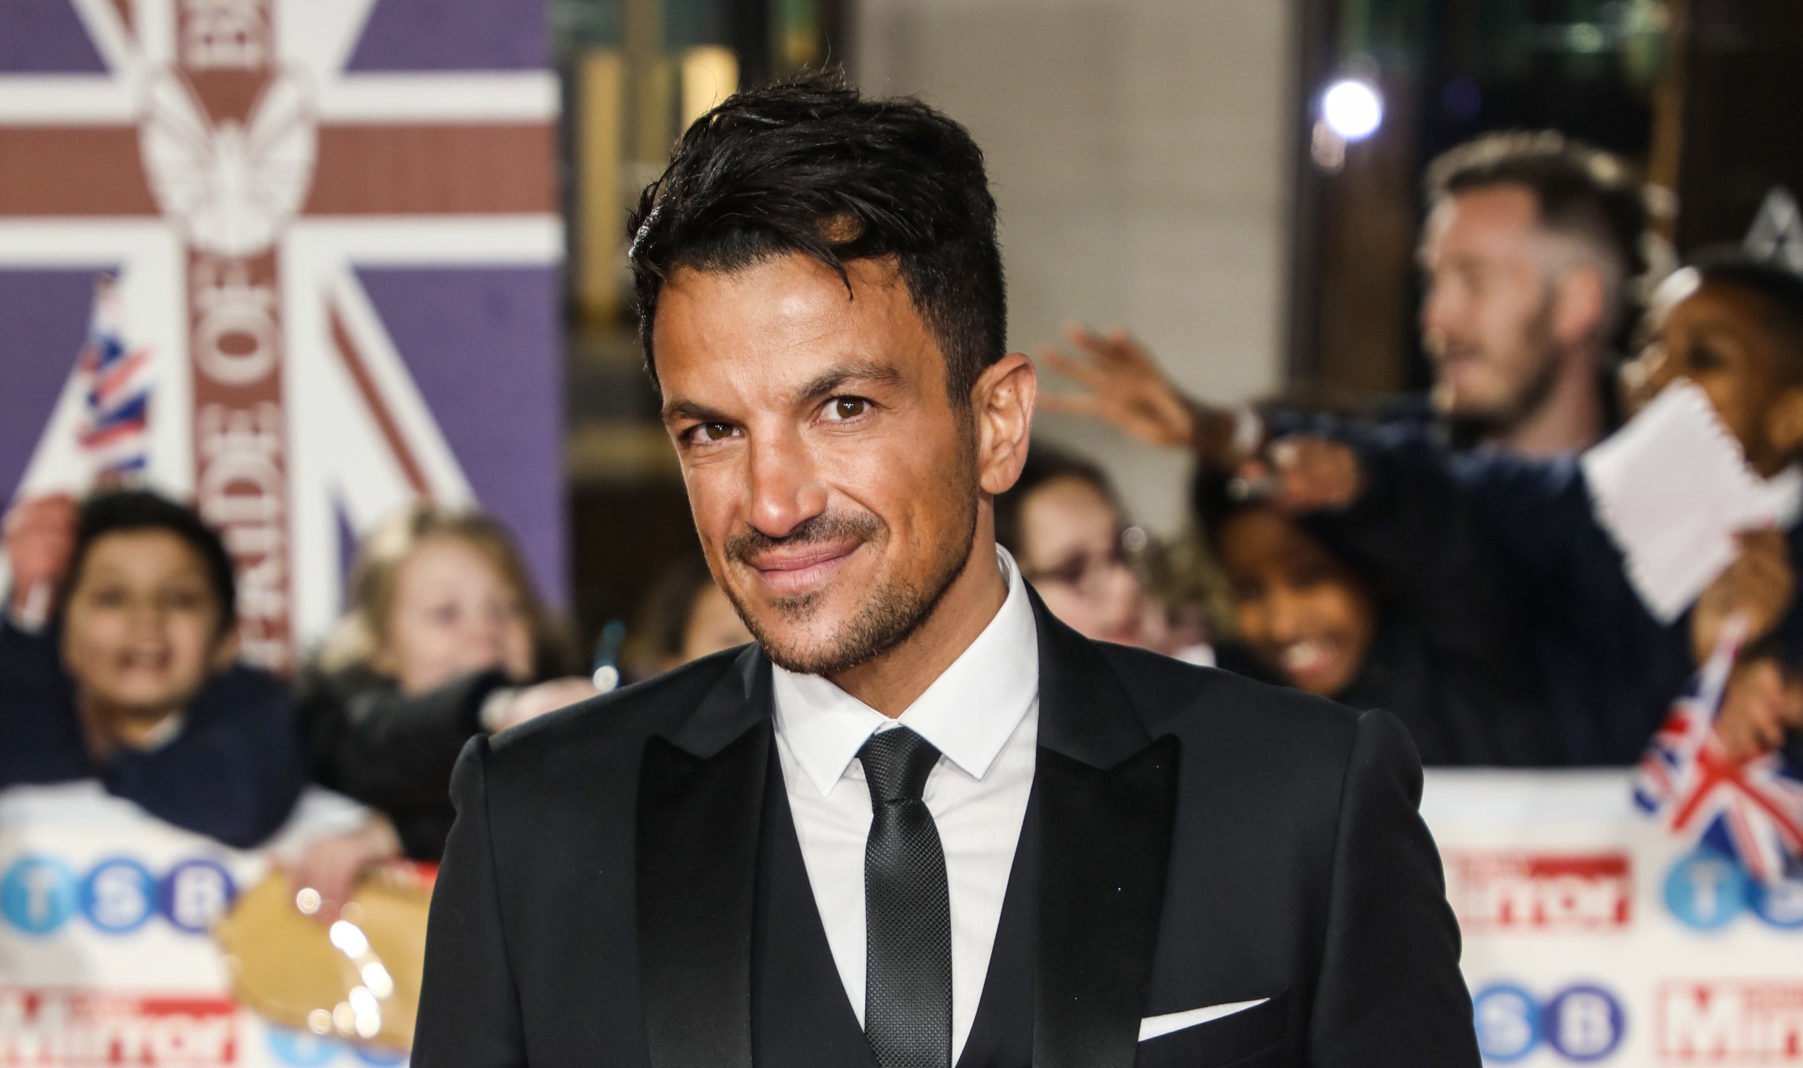 Peter Andre shares delight as he successfully styles daughter Amelia's hair